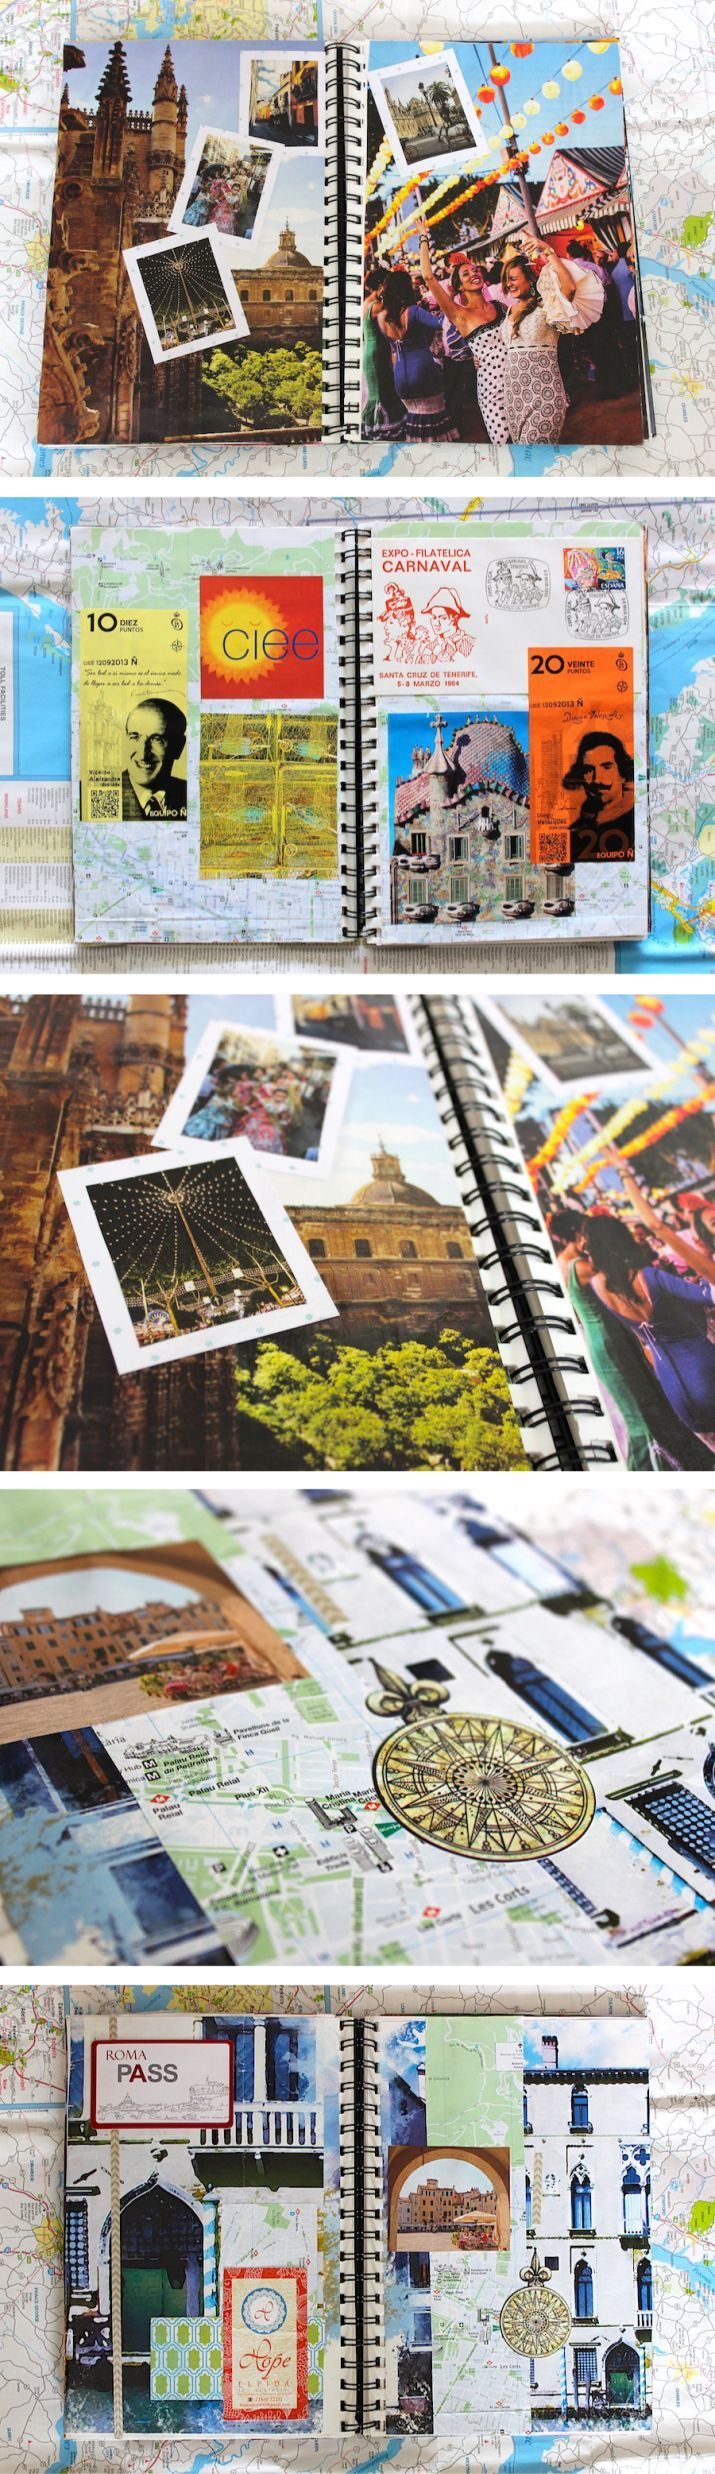 Europe Travel Diary: A Visual Journal